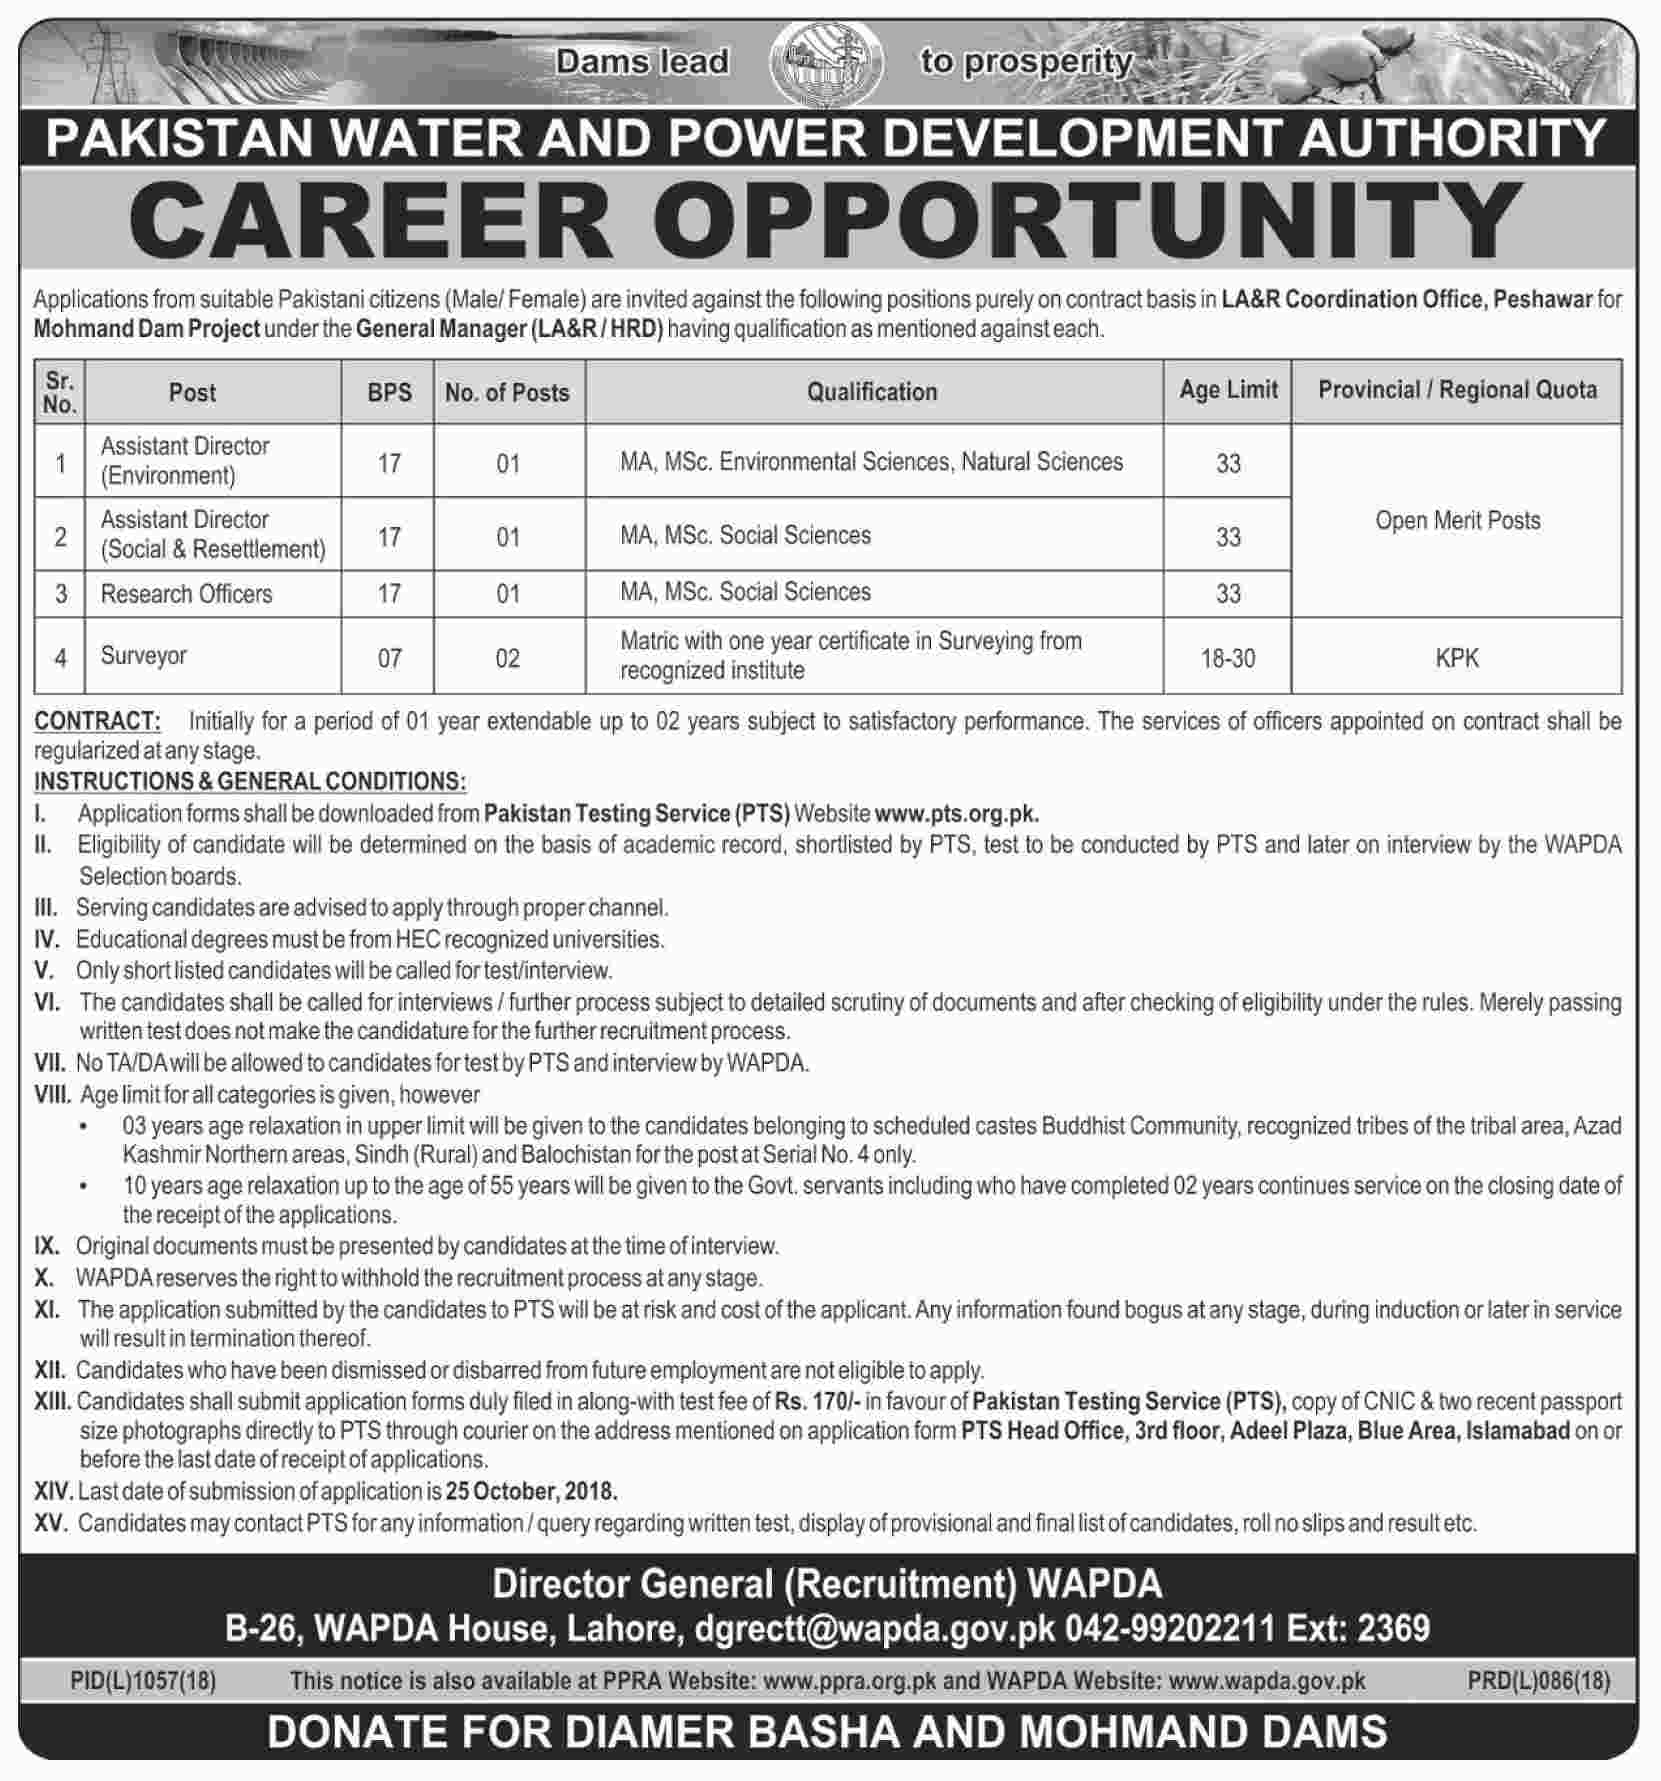 Pakistan Water and Power Development Authority PTS Jobs 2020 Application Form